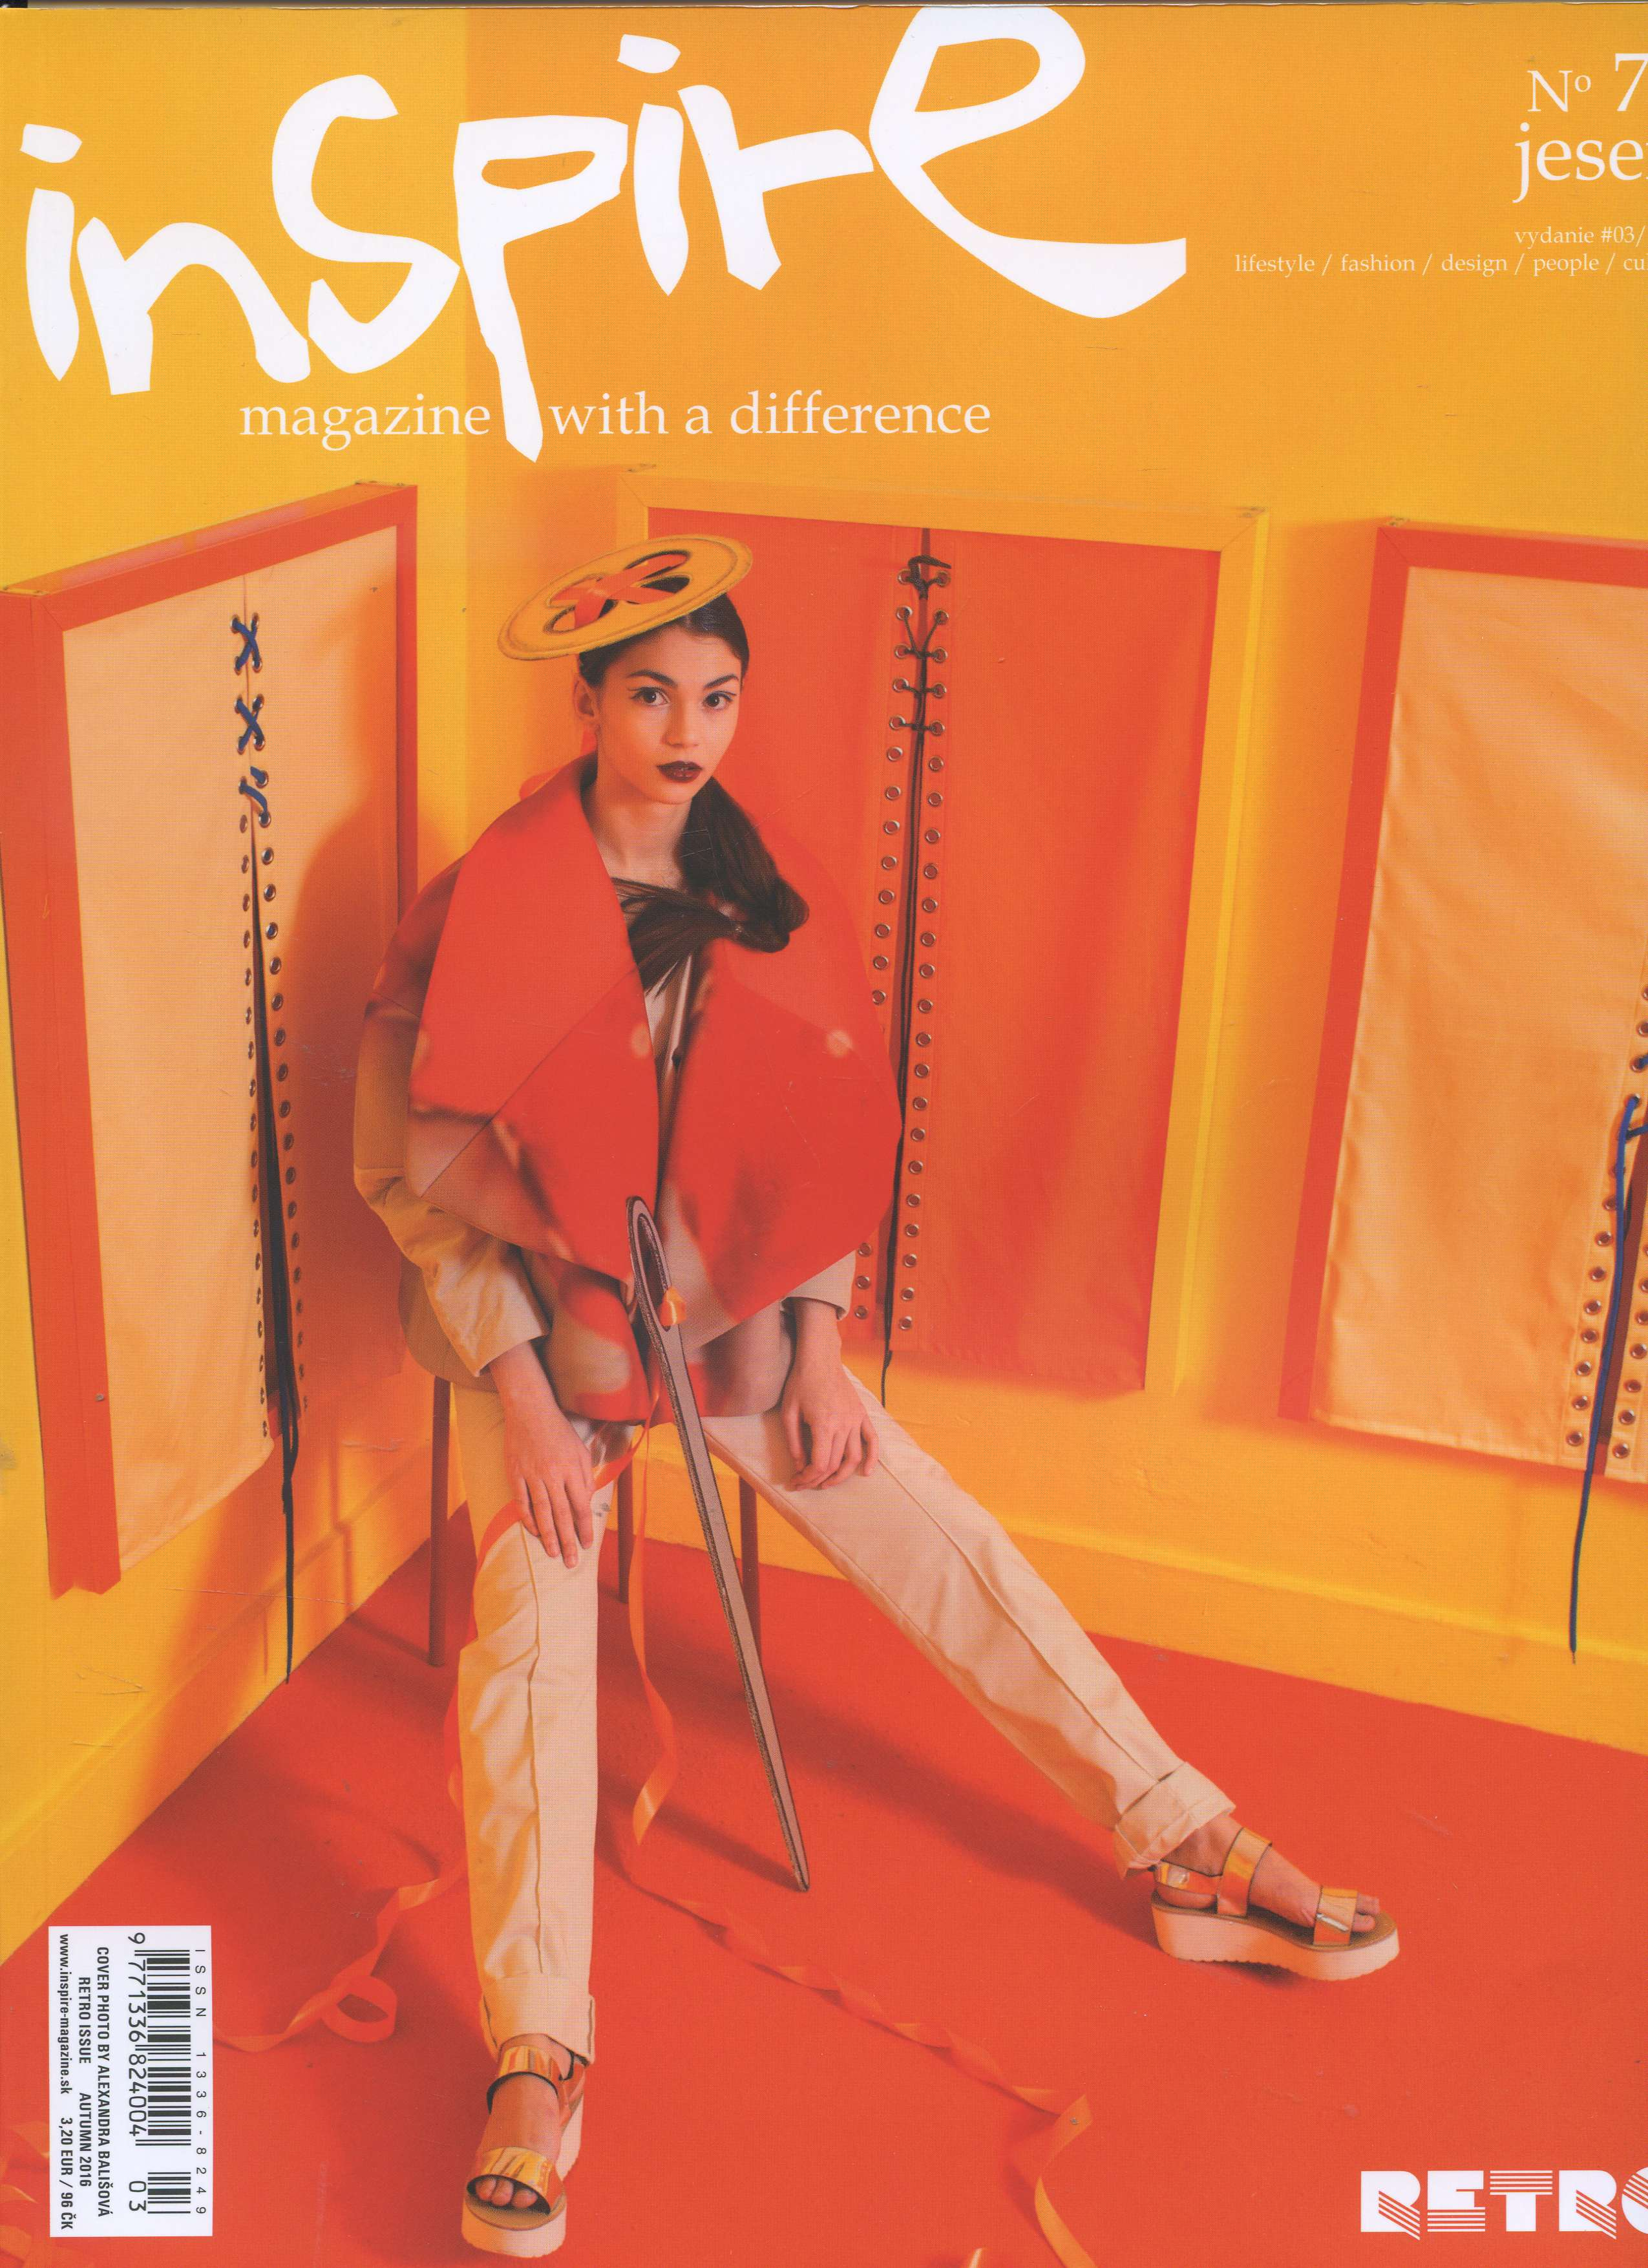 Inspire 3/2016 - Magazine with a difference No. 78 jeseň